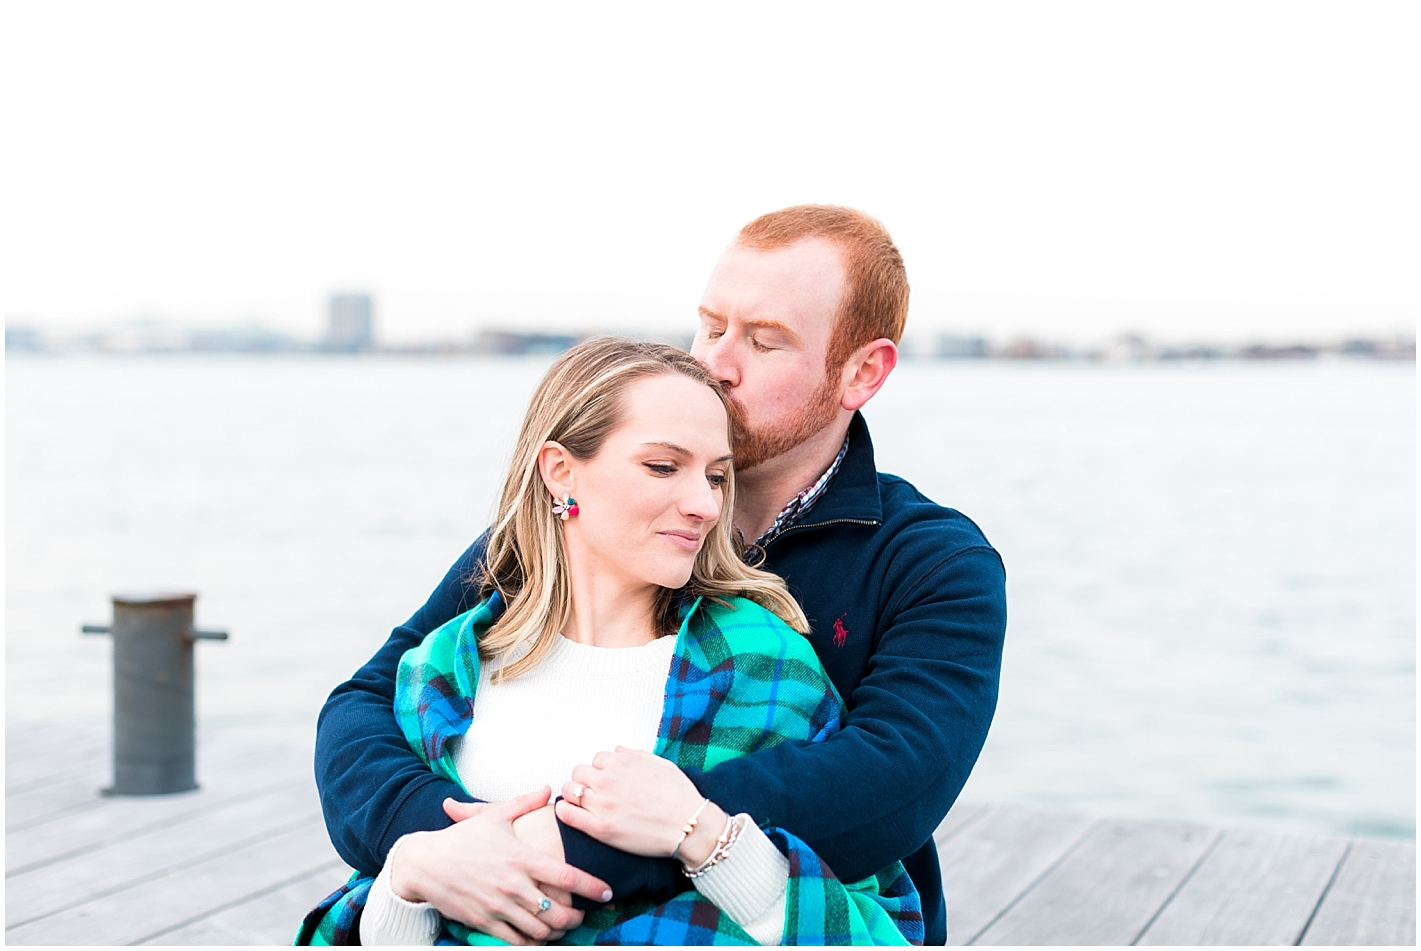 New ENgland Engagement session by Alyssa Parker Photography